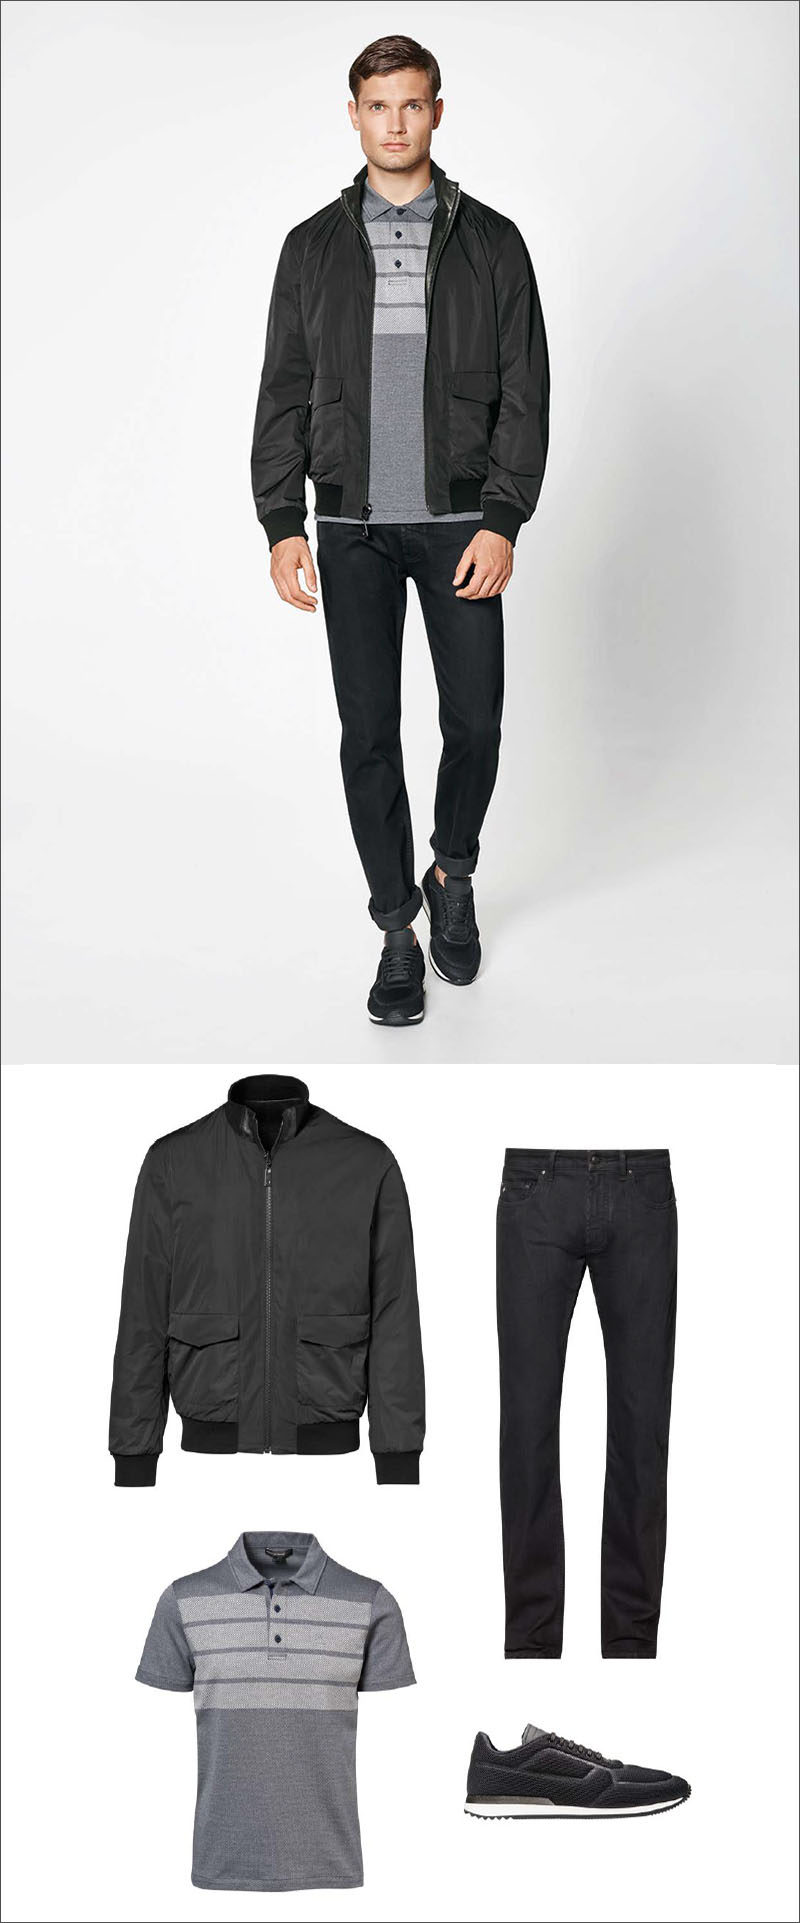 Men's Fashion Ideas - 17 Men's Outfits From Porsche Design's 2017 Spring/Summer Collection | Create a casual everyday men's outfit by pairing a black jacket with a simple grey polo, black jeans, and a pair of black mesh sneakers.